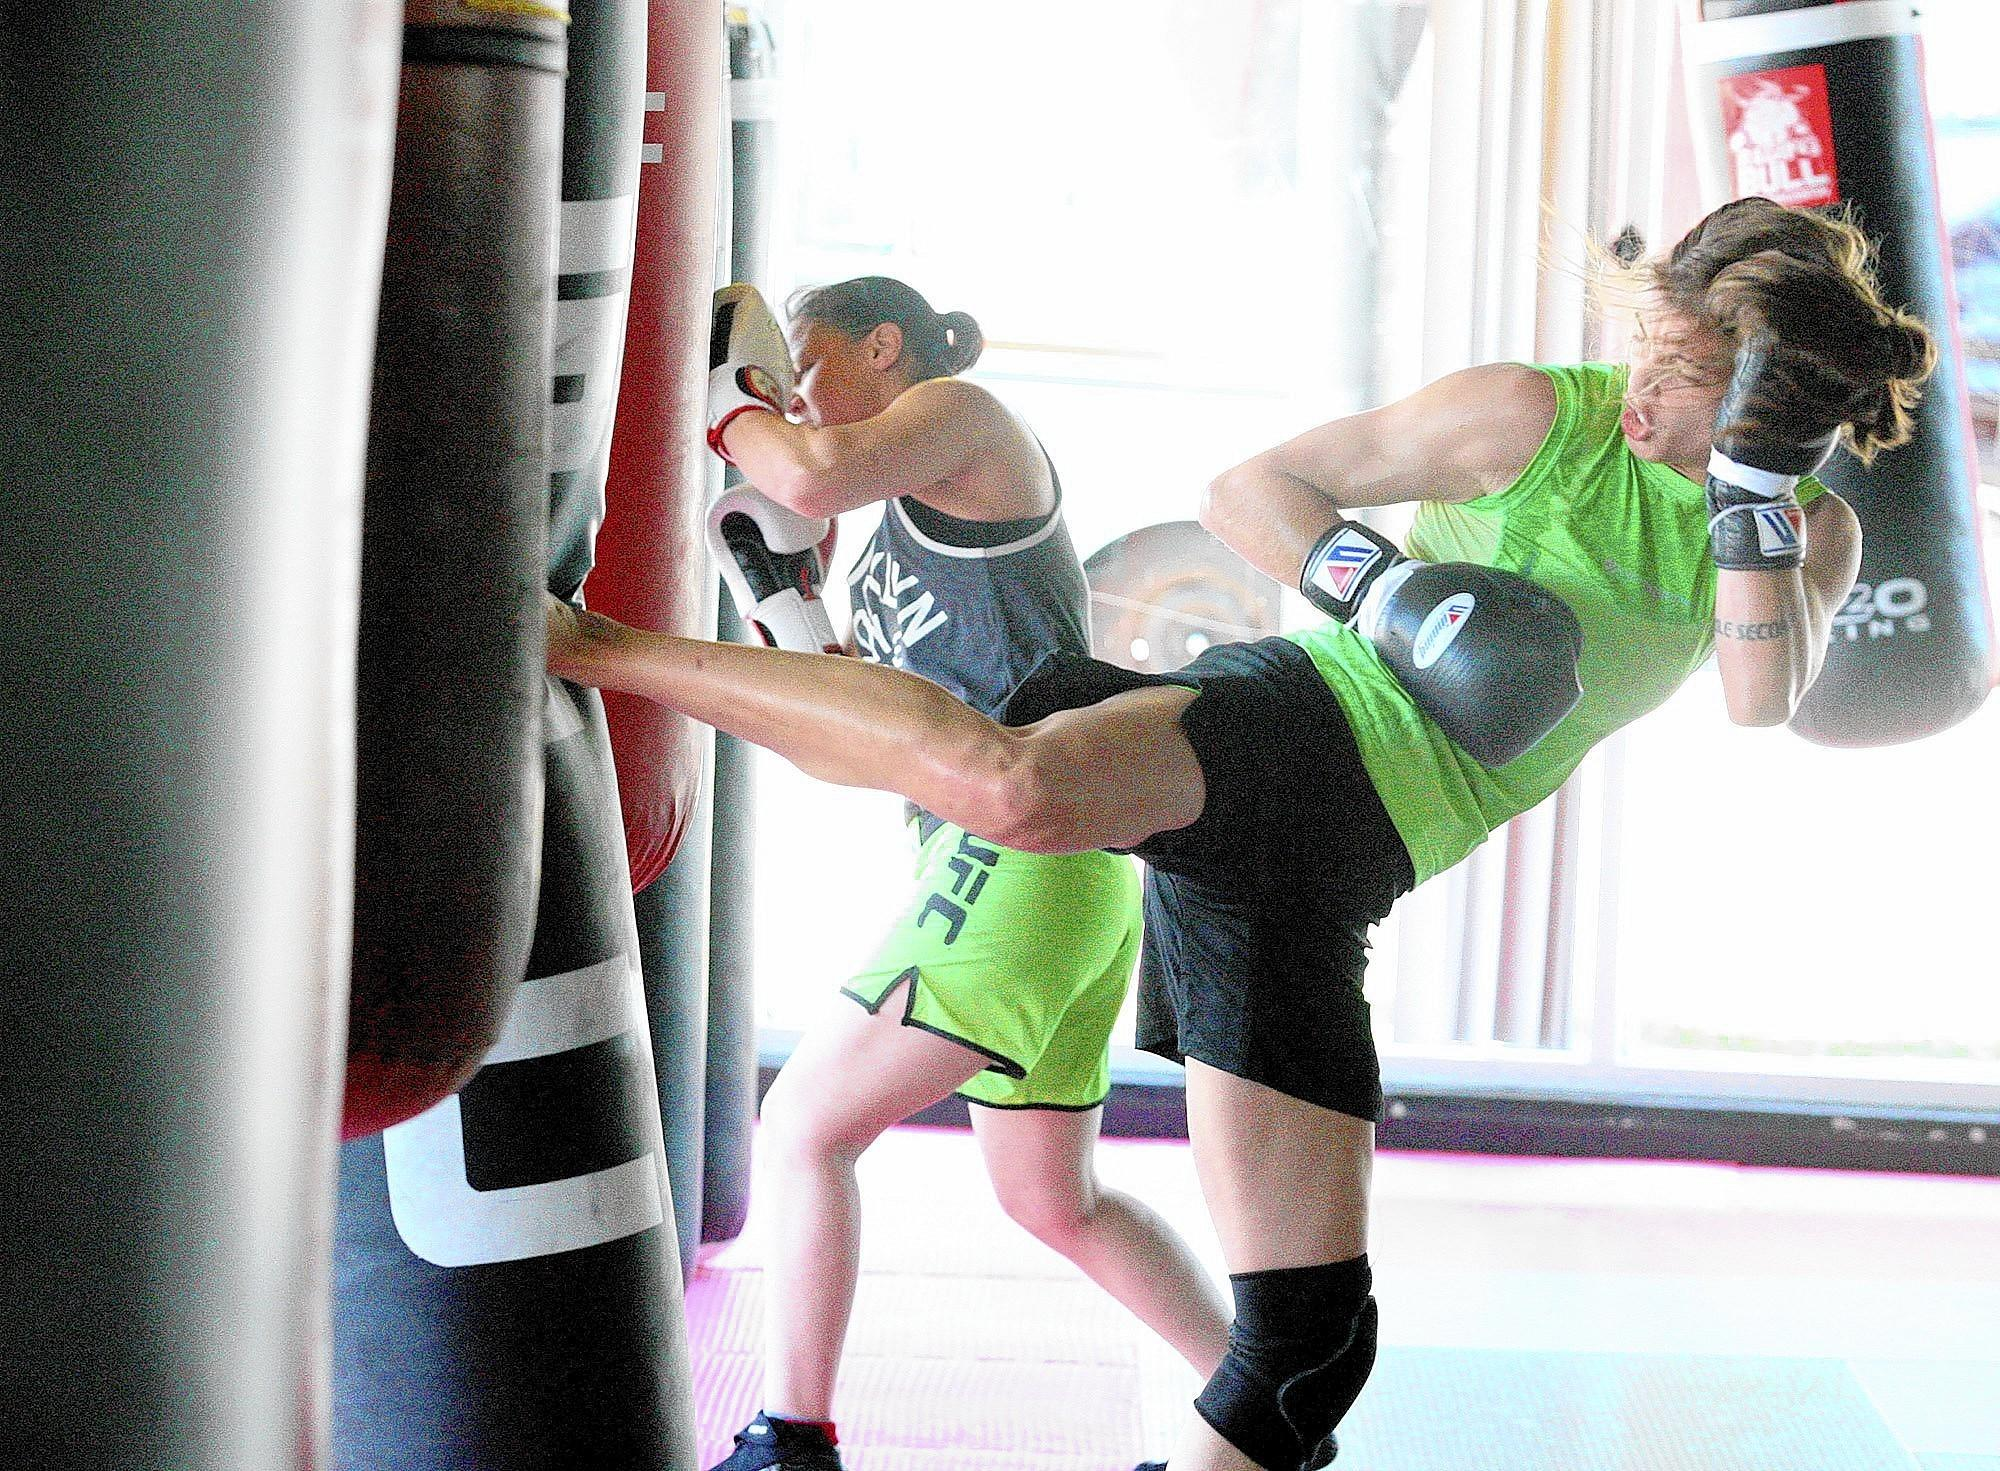 Jessamyn Duke, right, spins and kicks a bag as Shayna Baszler punches a bag as they train at the Glendale Fight Club on Friday, November 1, 2013.